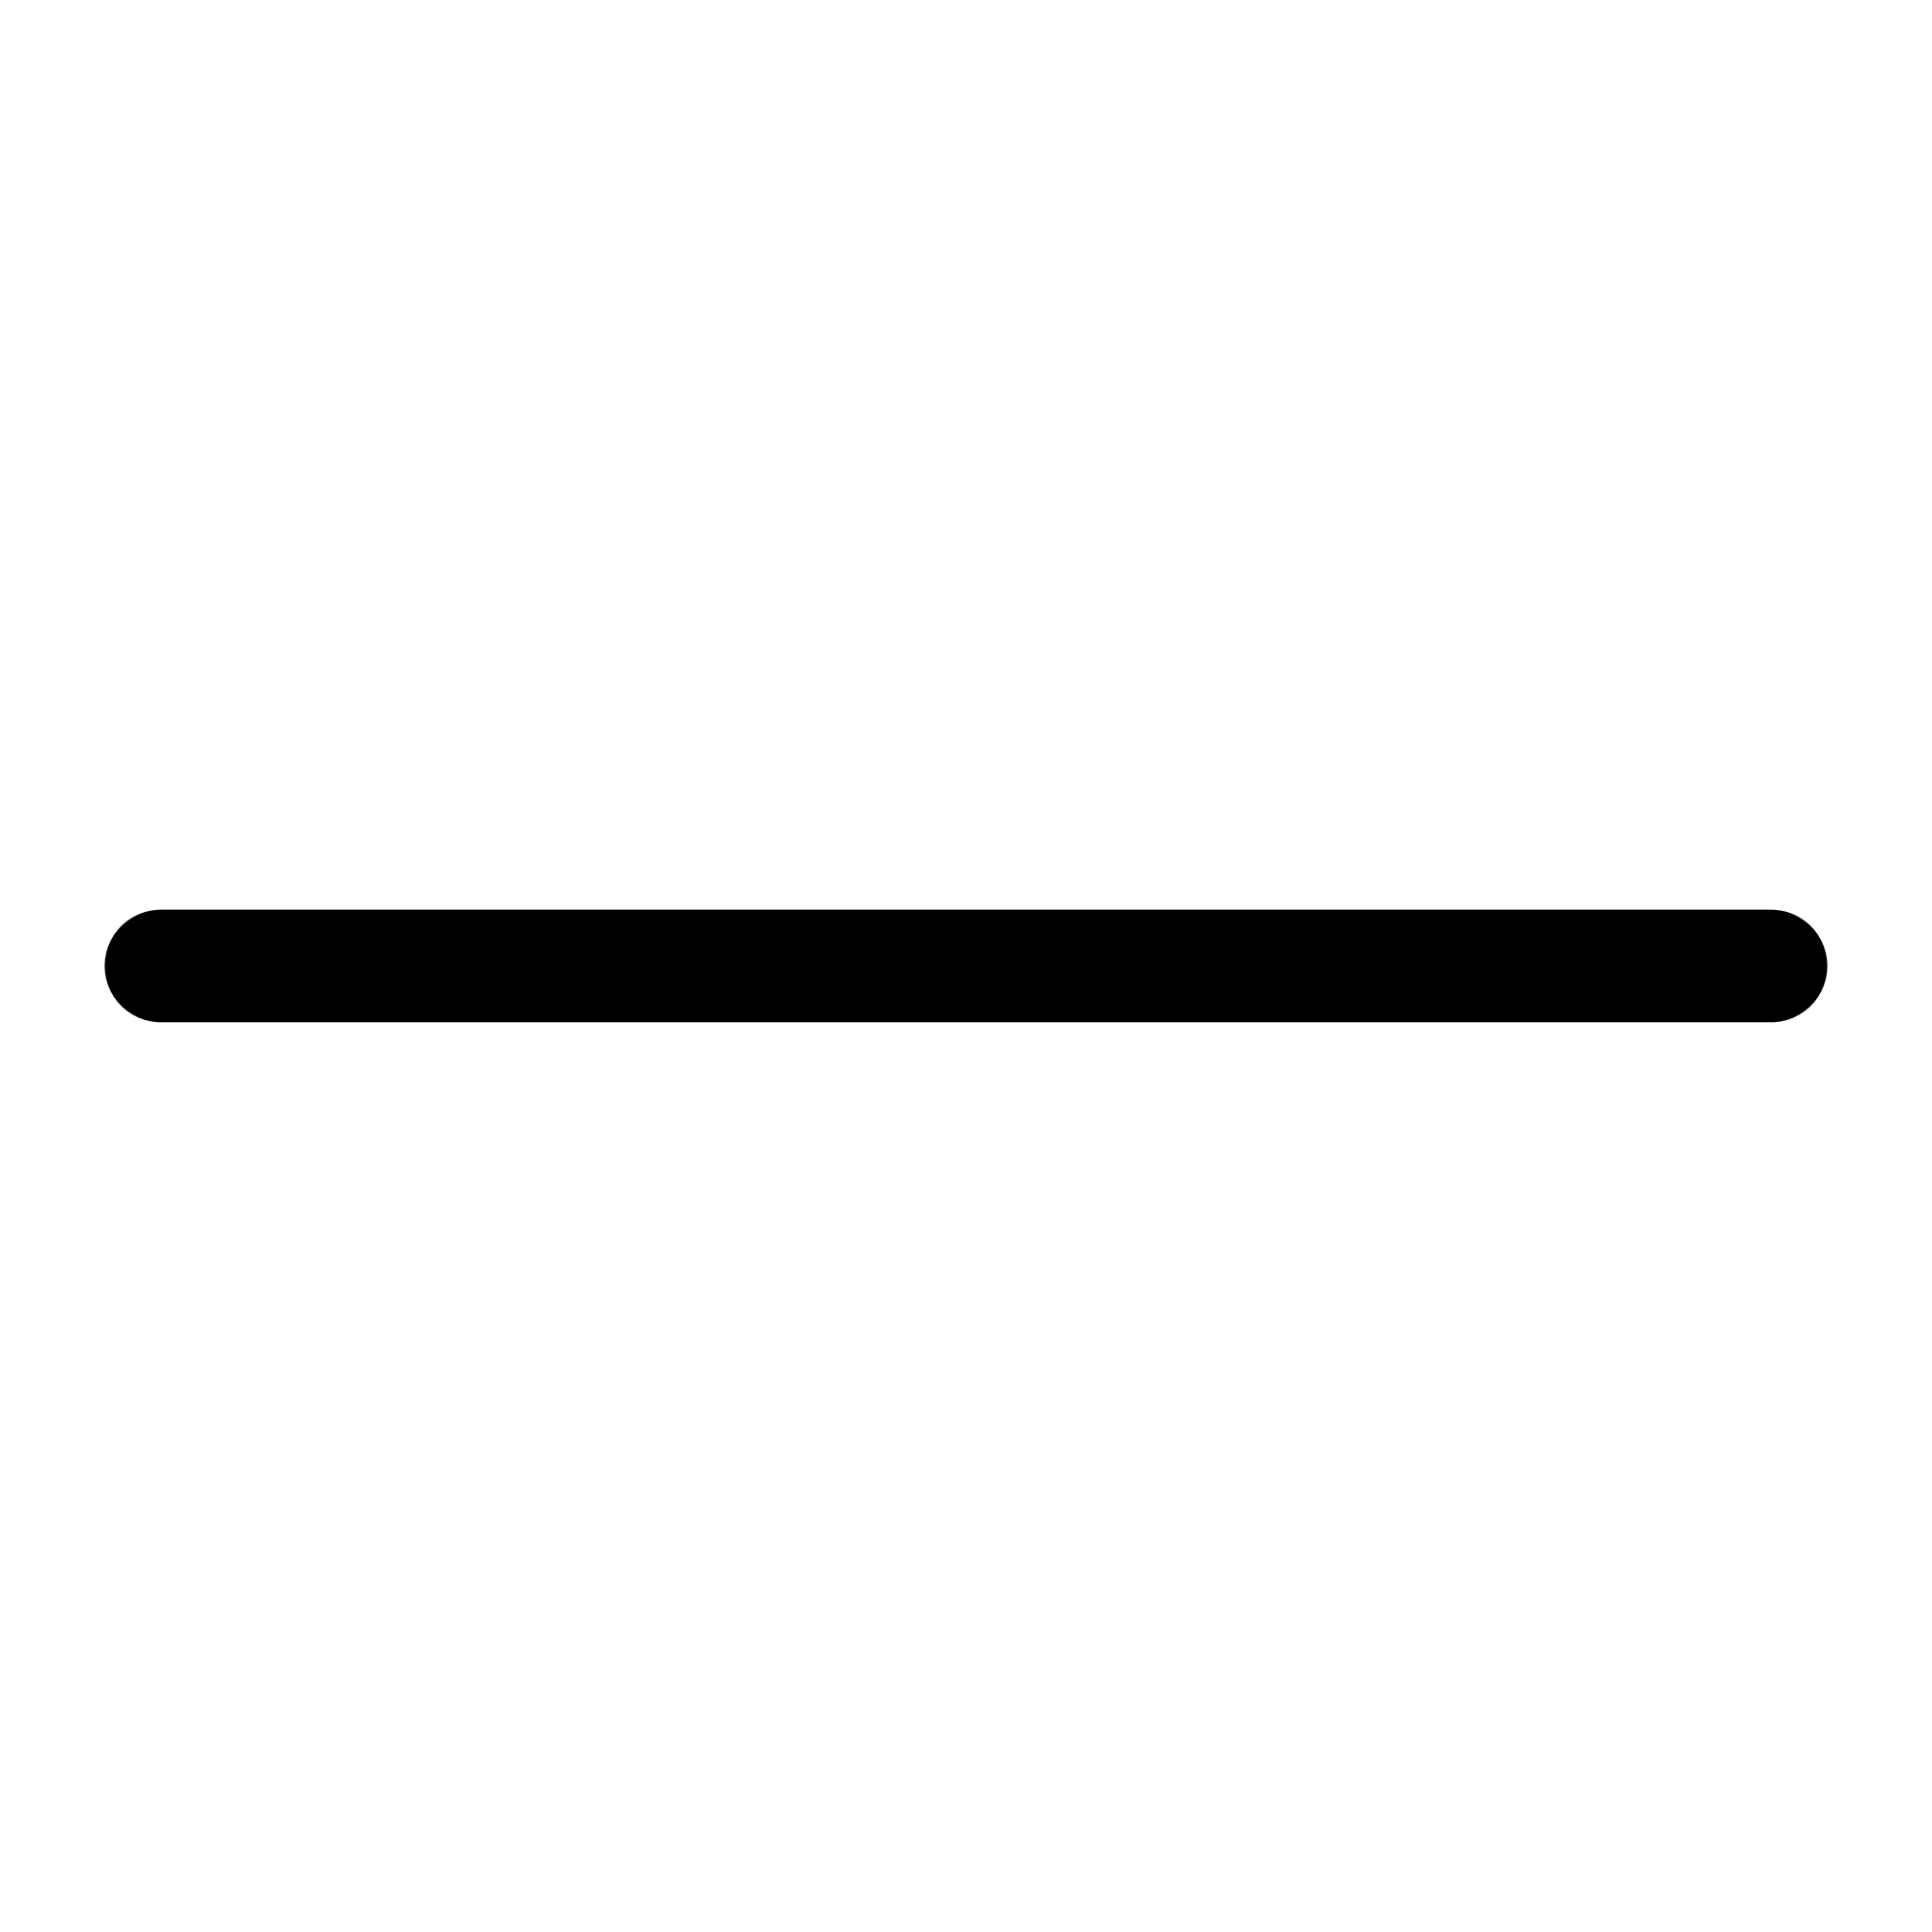 Thick line png. File minuscm svg wikimedia